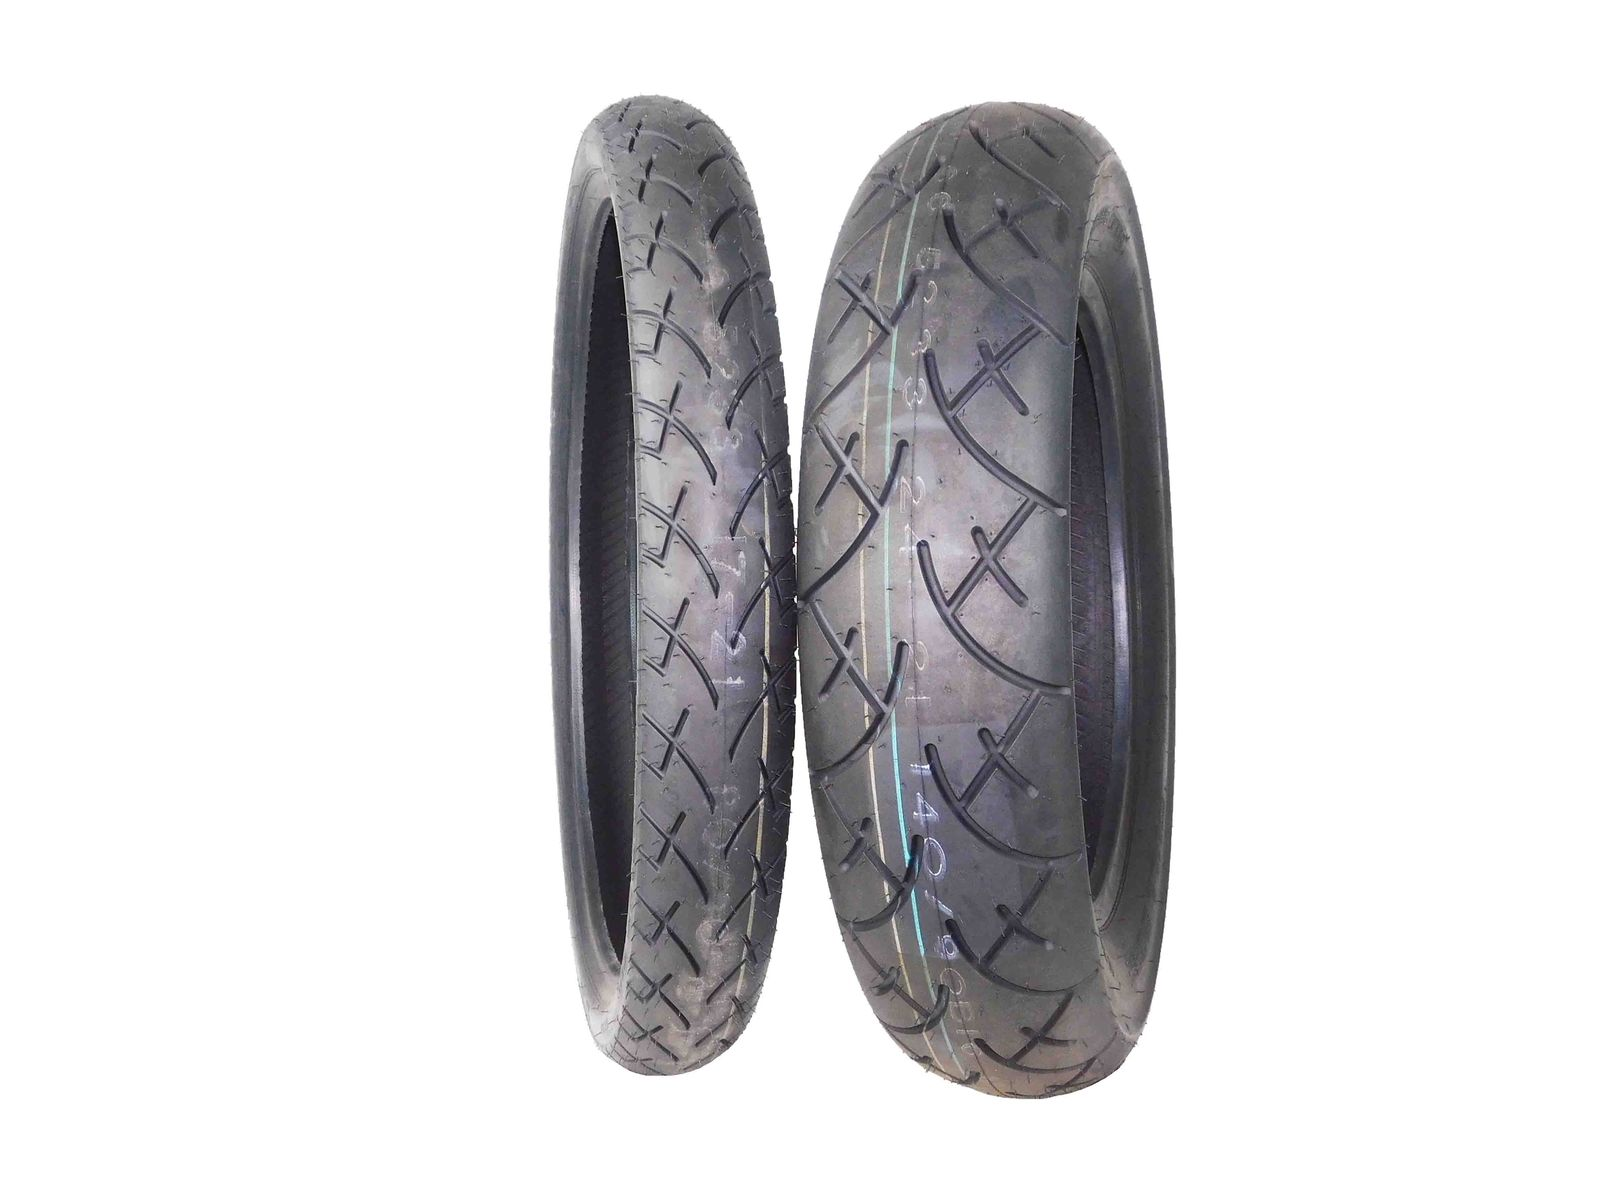 Full-Bore-80-90-21-Front-140-90-16-Rear-Cruisers-Motorcycle-Tires-image-1